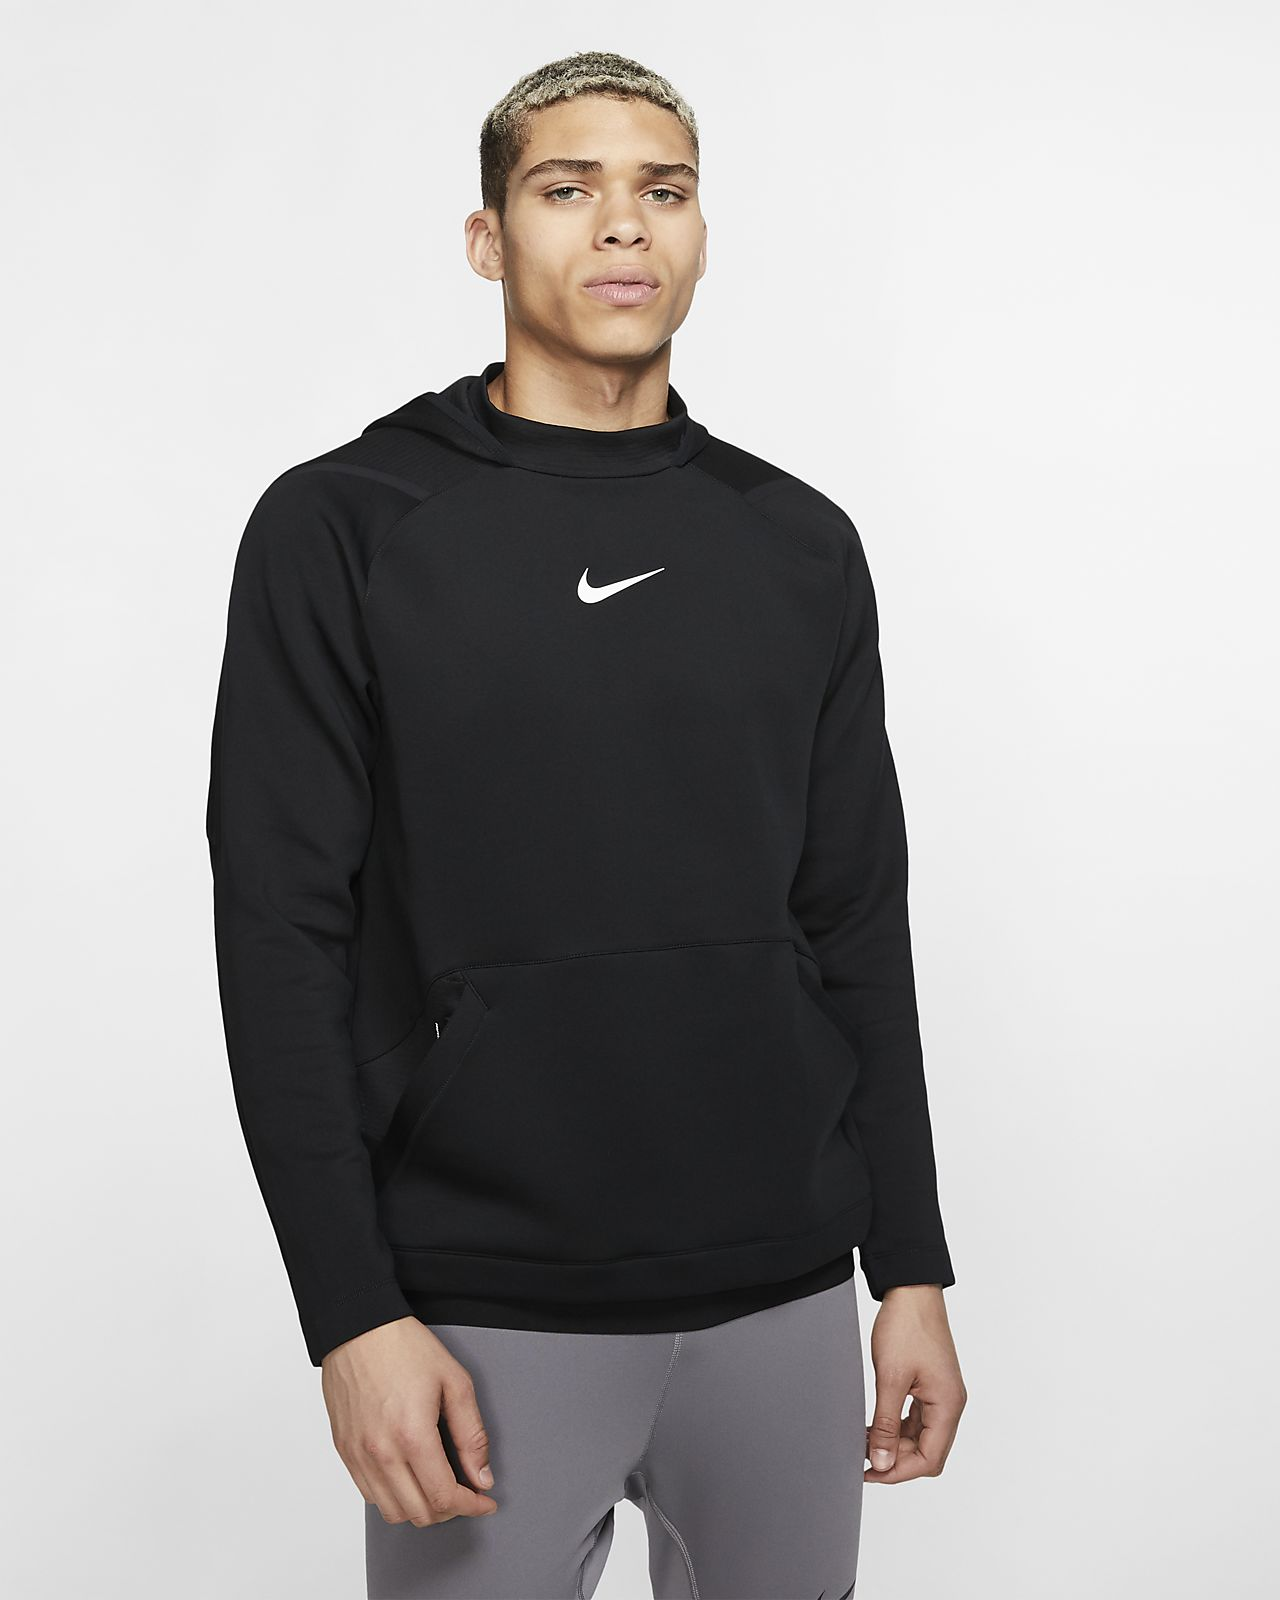 sweat shirt nike a capuche homme